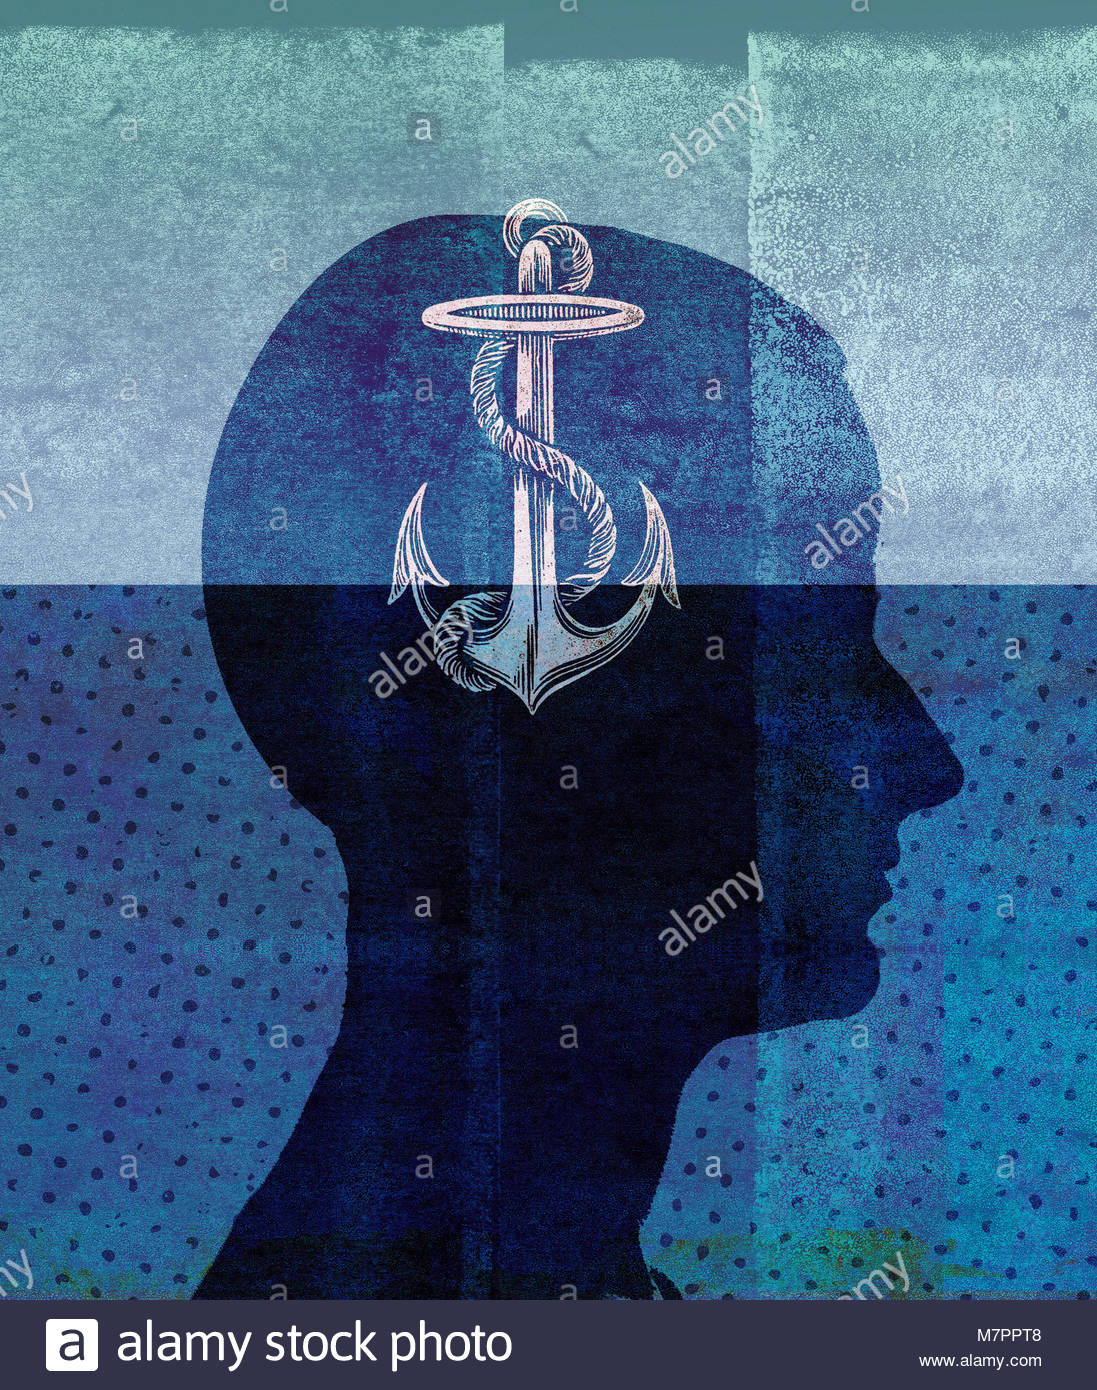 Profile of man sinking in water with anchor inside of head - Stock Image